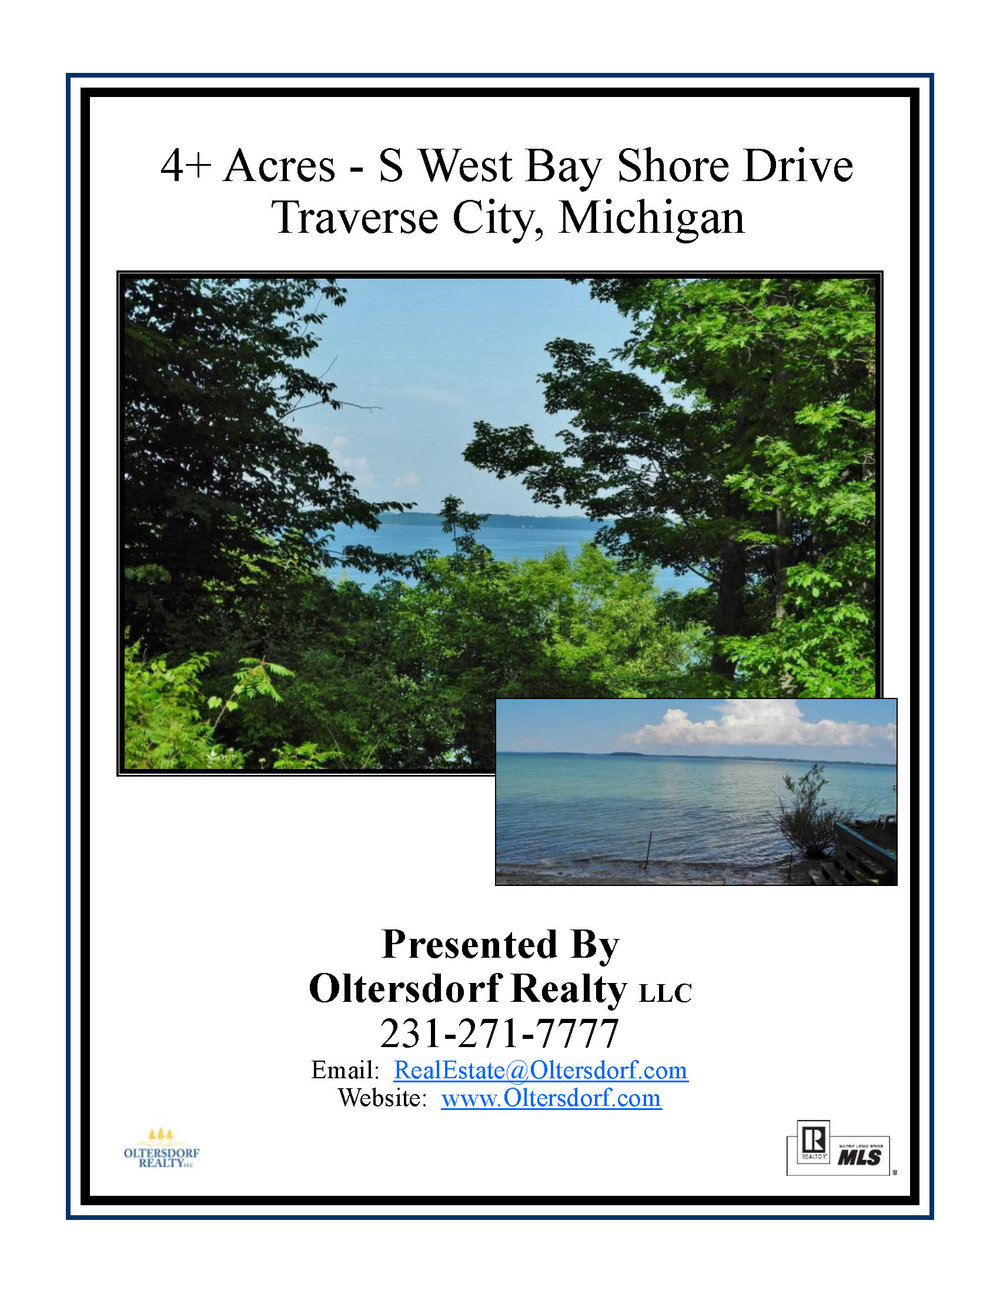 4+ Acres - S West Bayshore Drive, Traverse City – FOR SALE by Oltersdorf Realty - Marketing Packet (1).jpg